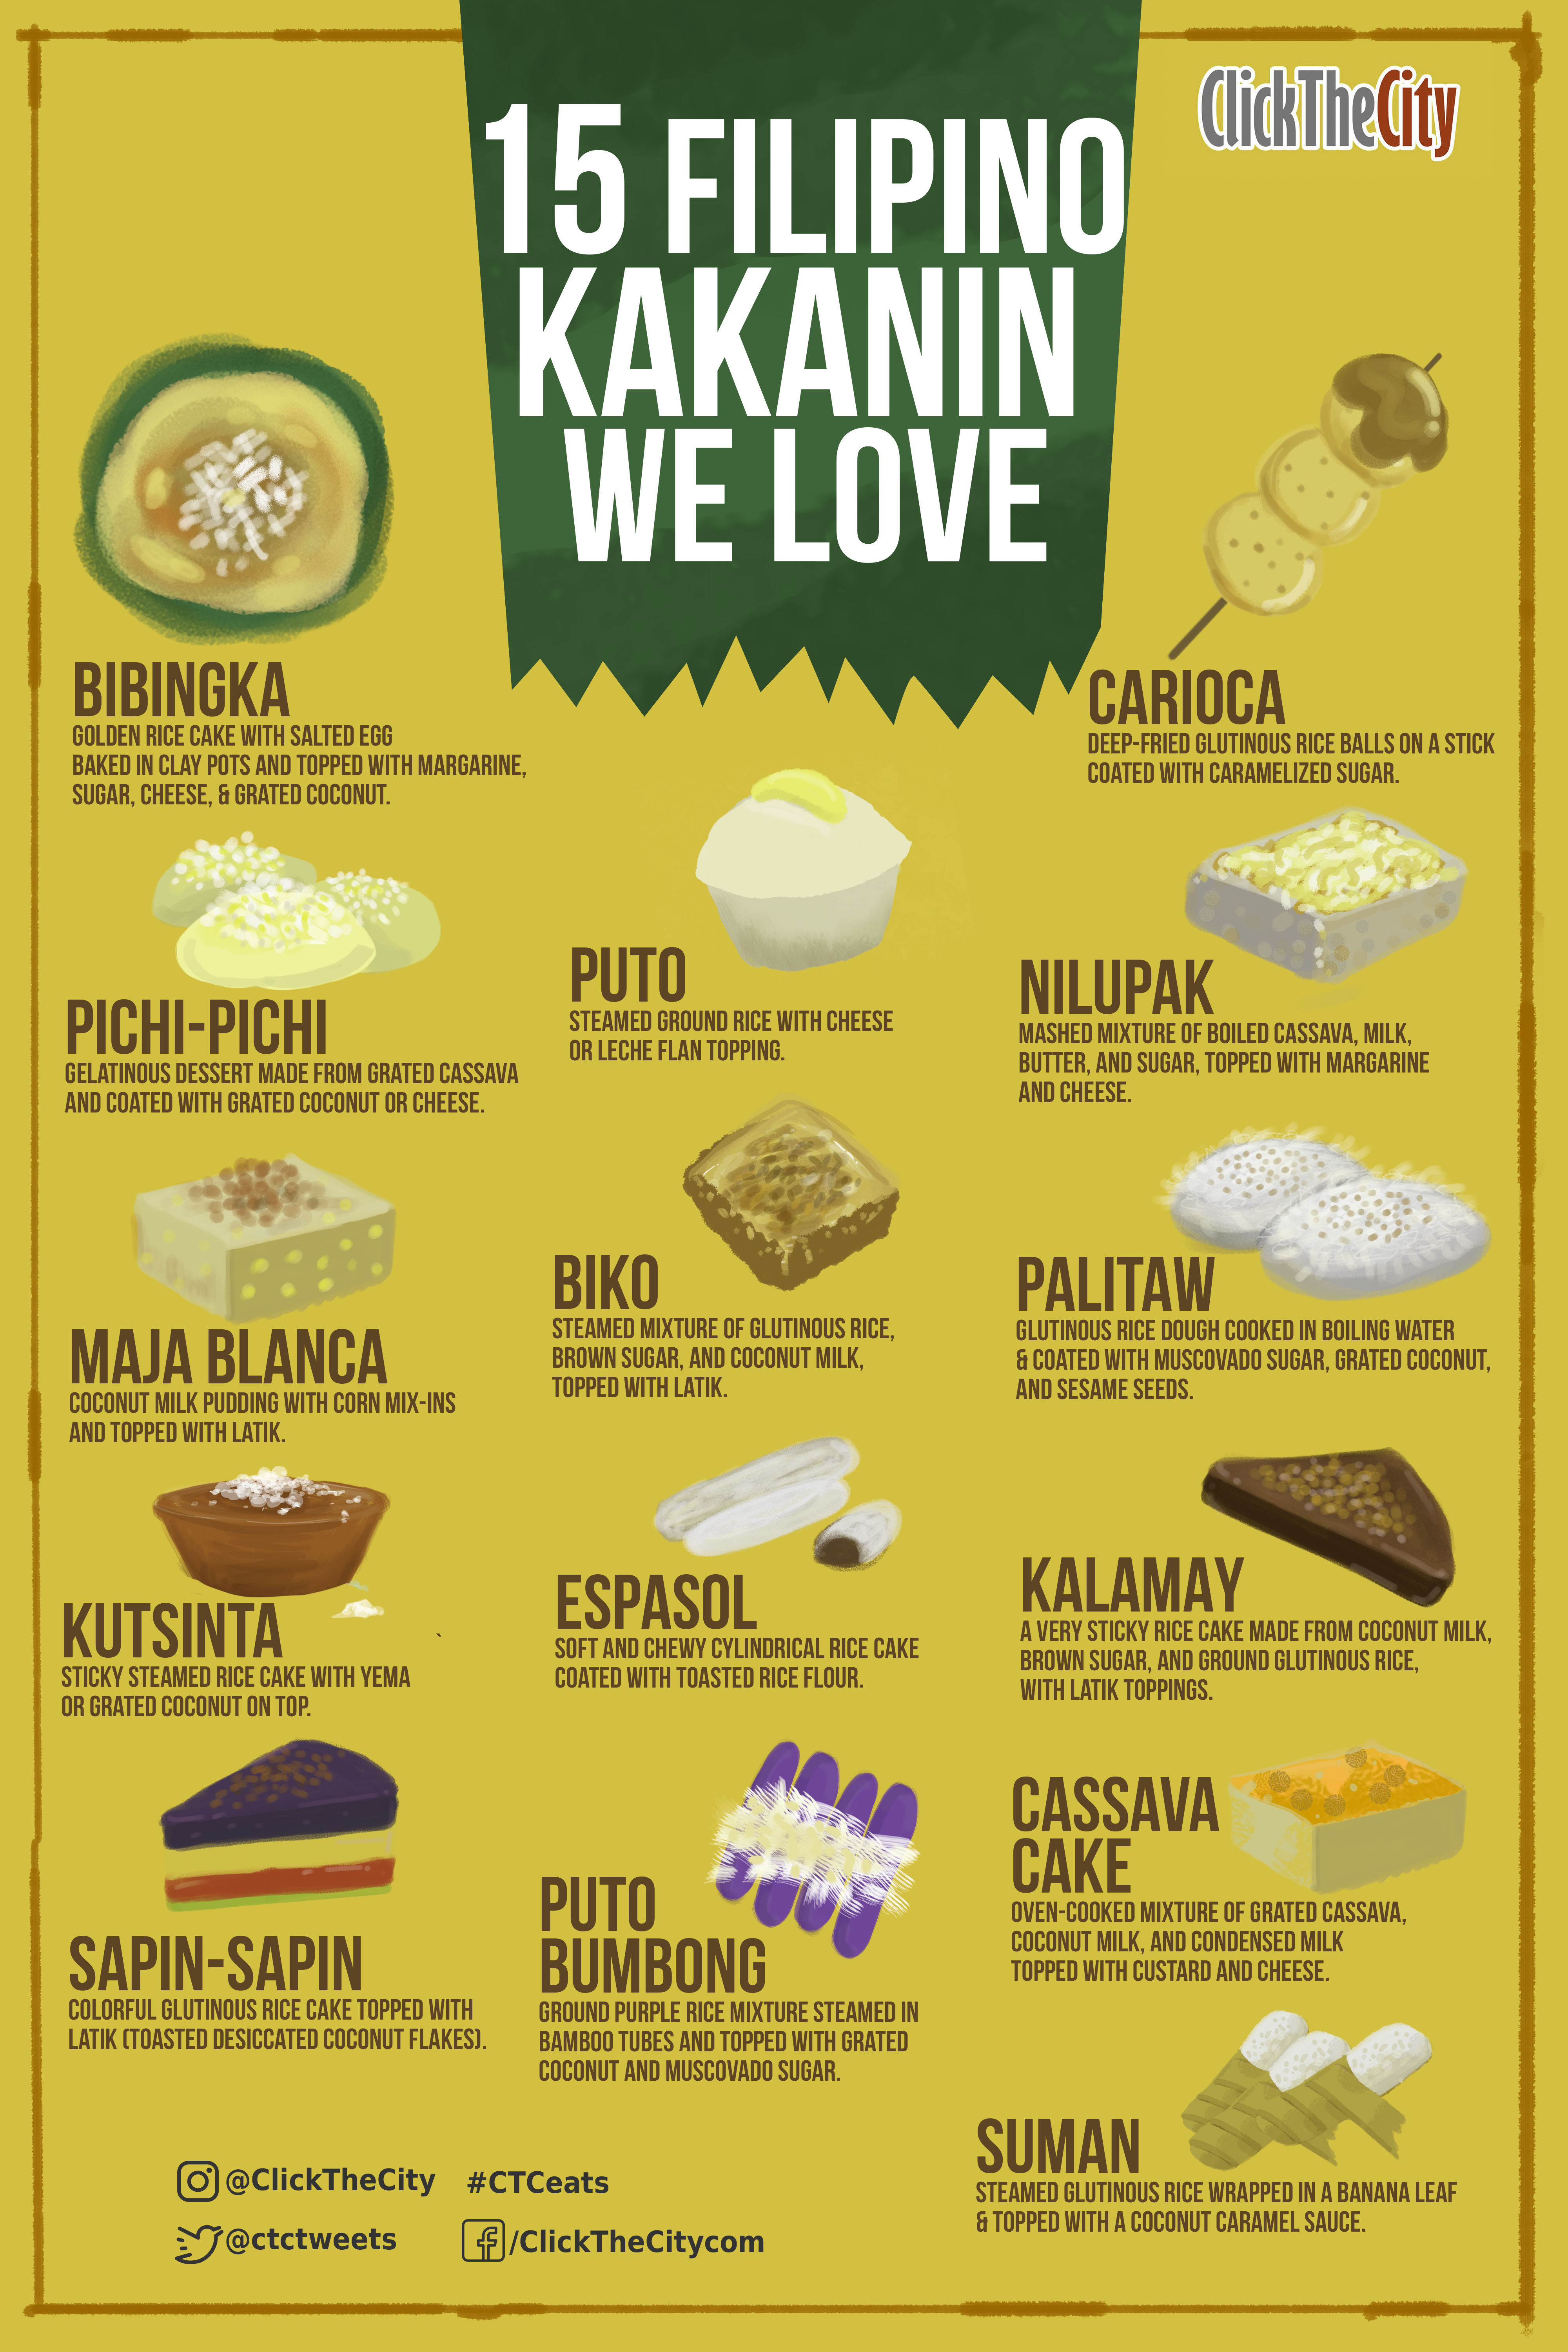 the anatomy of Pinoy Halo-Halo clickthecity infographic